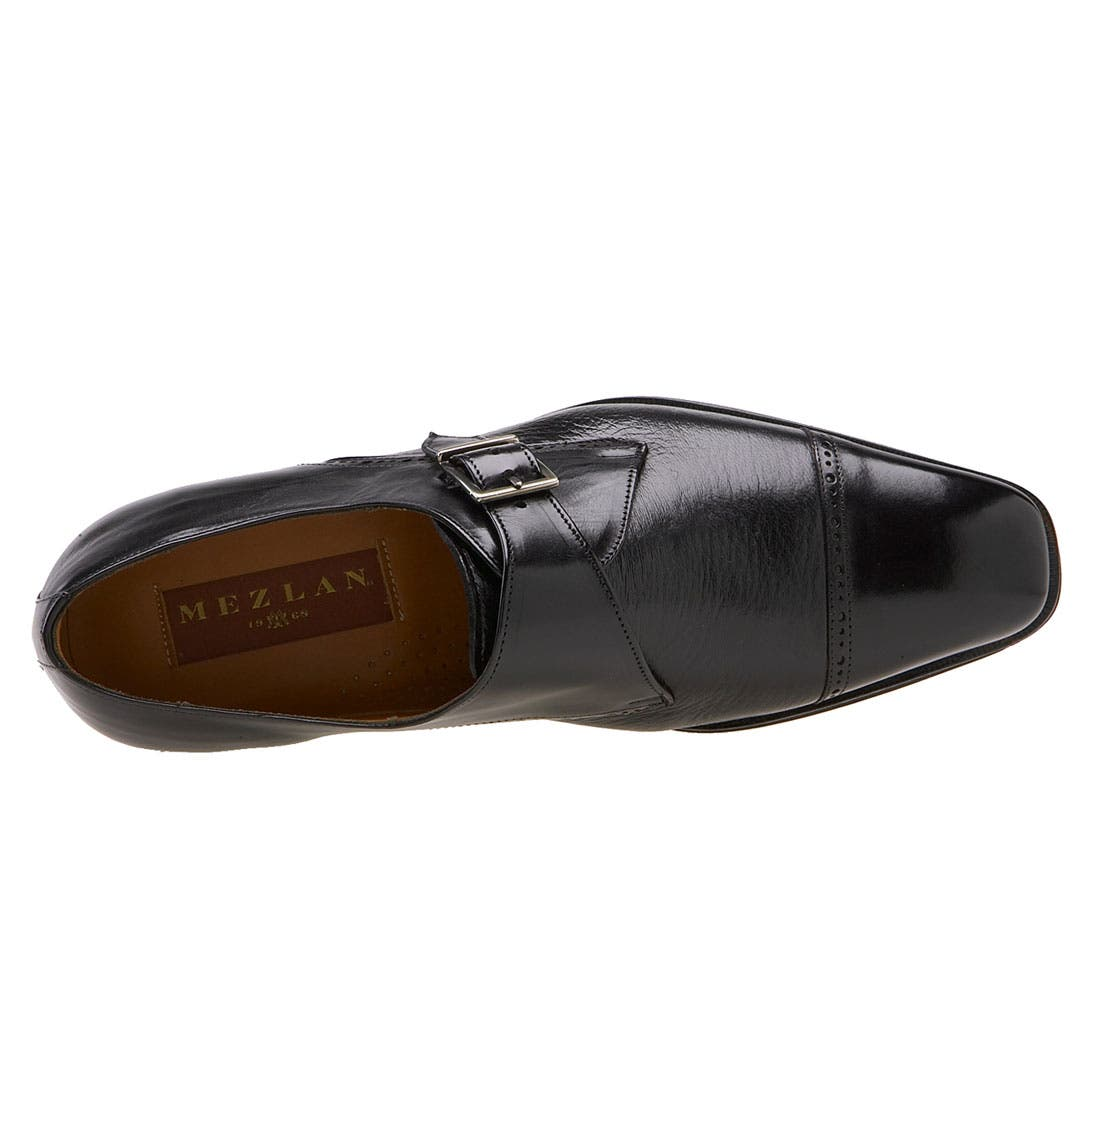 Alternate Image 3  - Mezlan 'Mercker II' Monk Strap Loafer